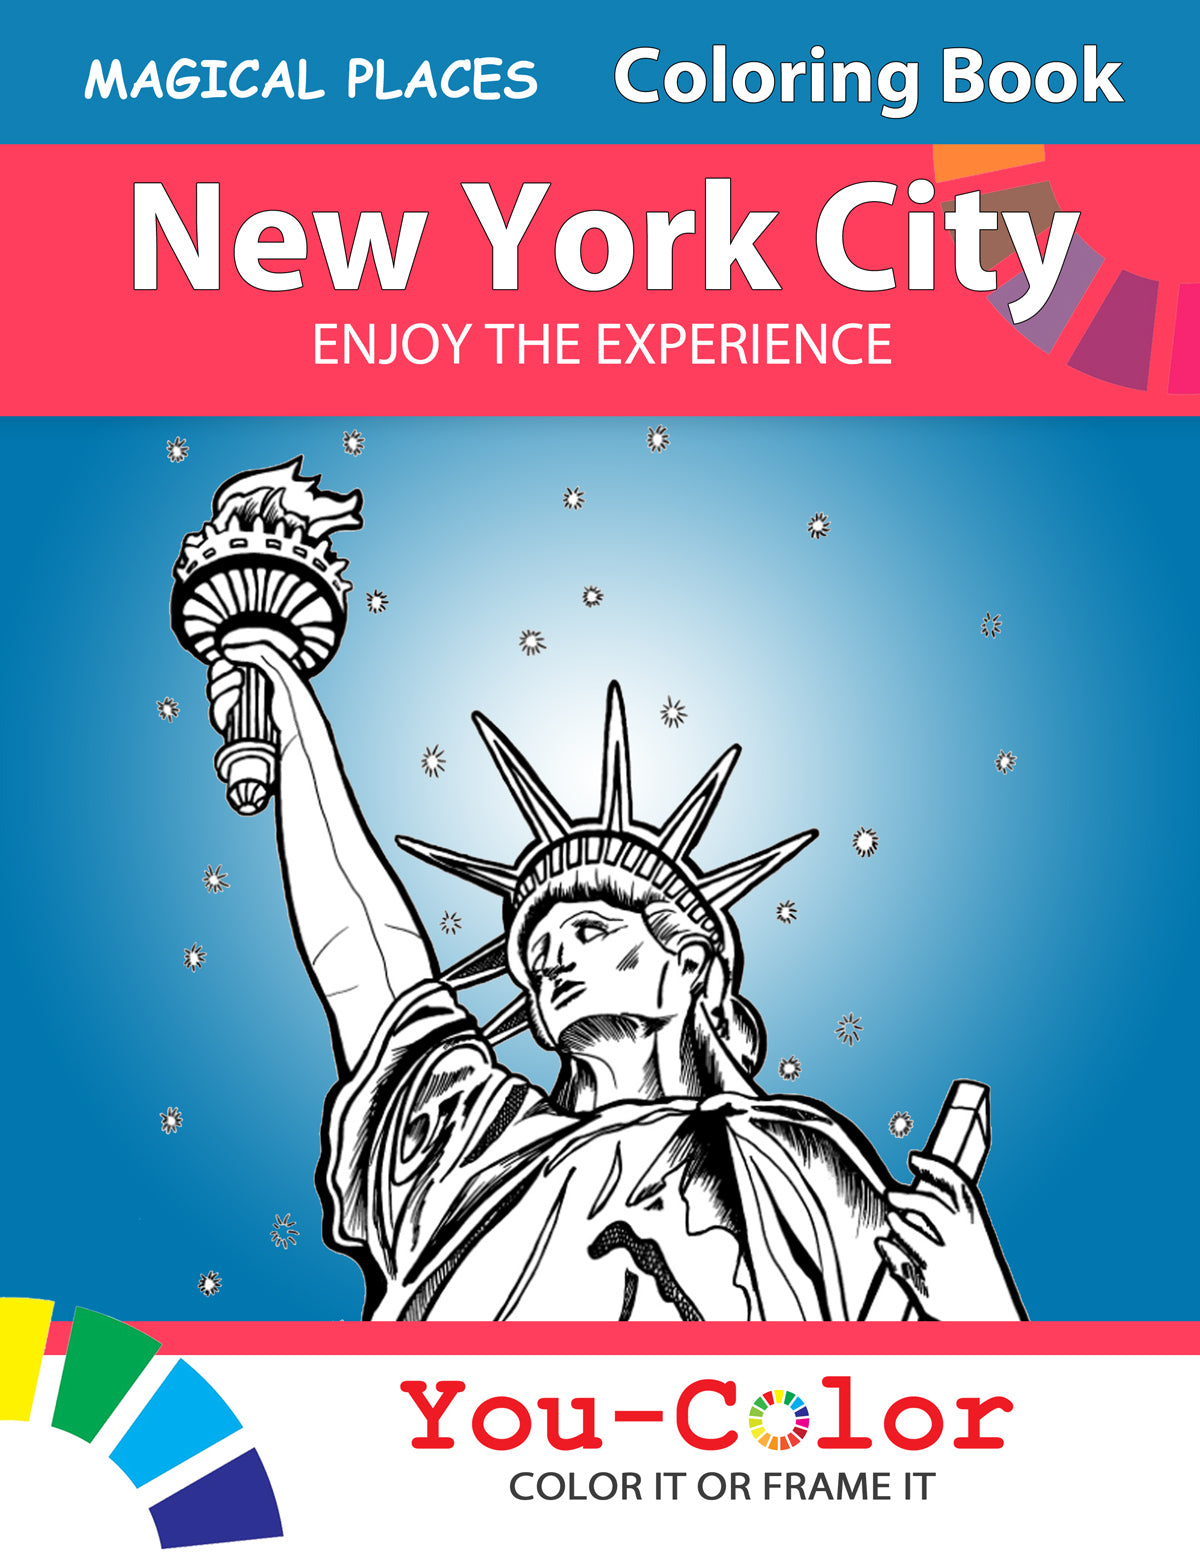 Big New York City Coloring Book: Magical Places Coloring Book - You-Color